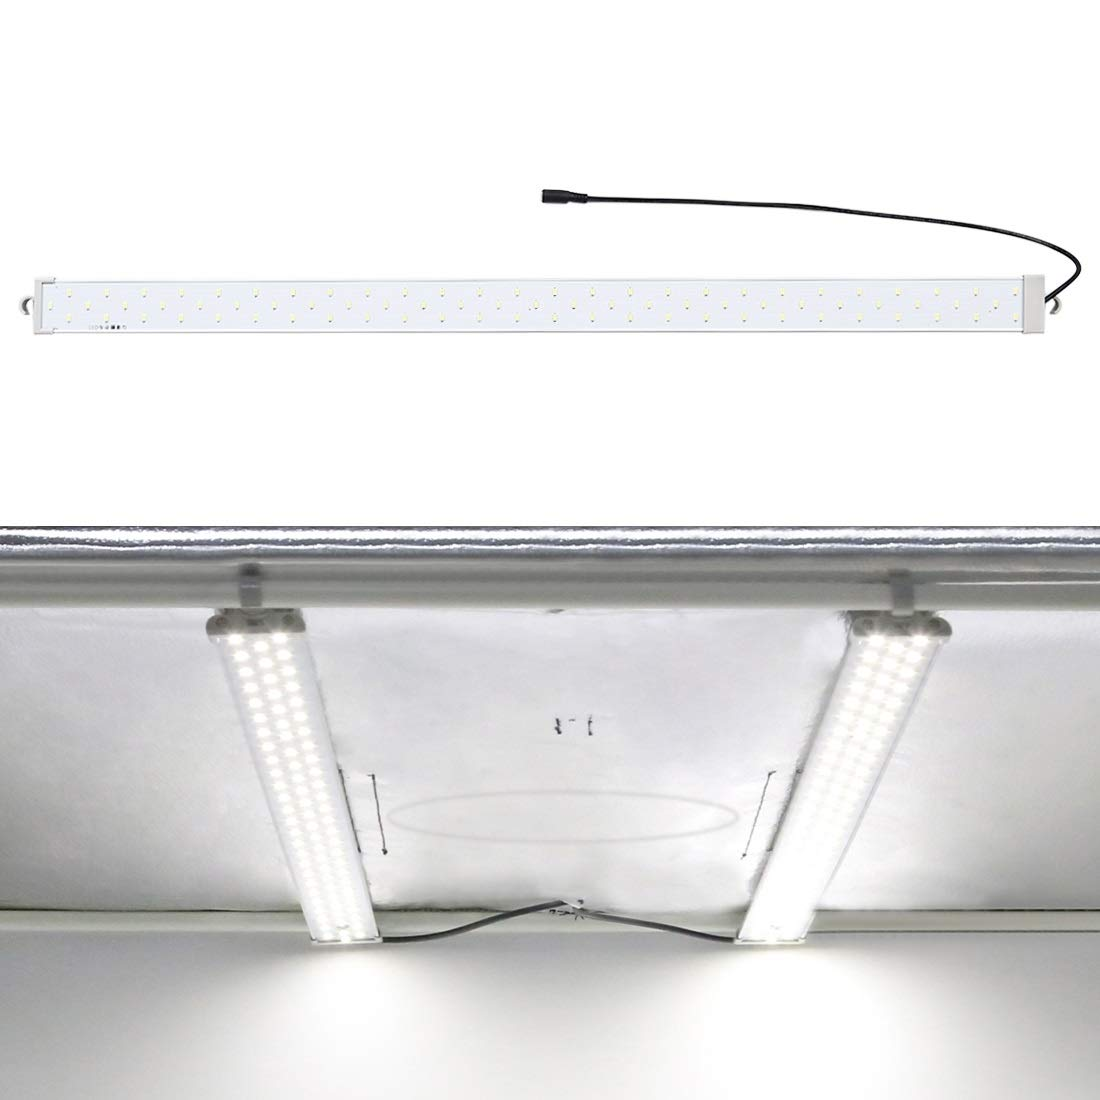 MOBILEACCESSORIES for TL 40W 4250LM 78 LEDs SMD 5730 5500K Aluminum Base Light Panel for 80cm Studio Tent Photography Lights